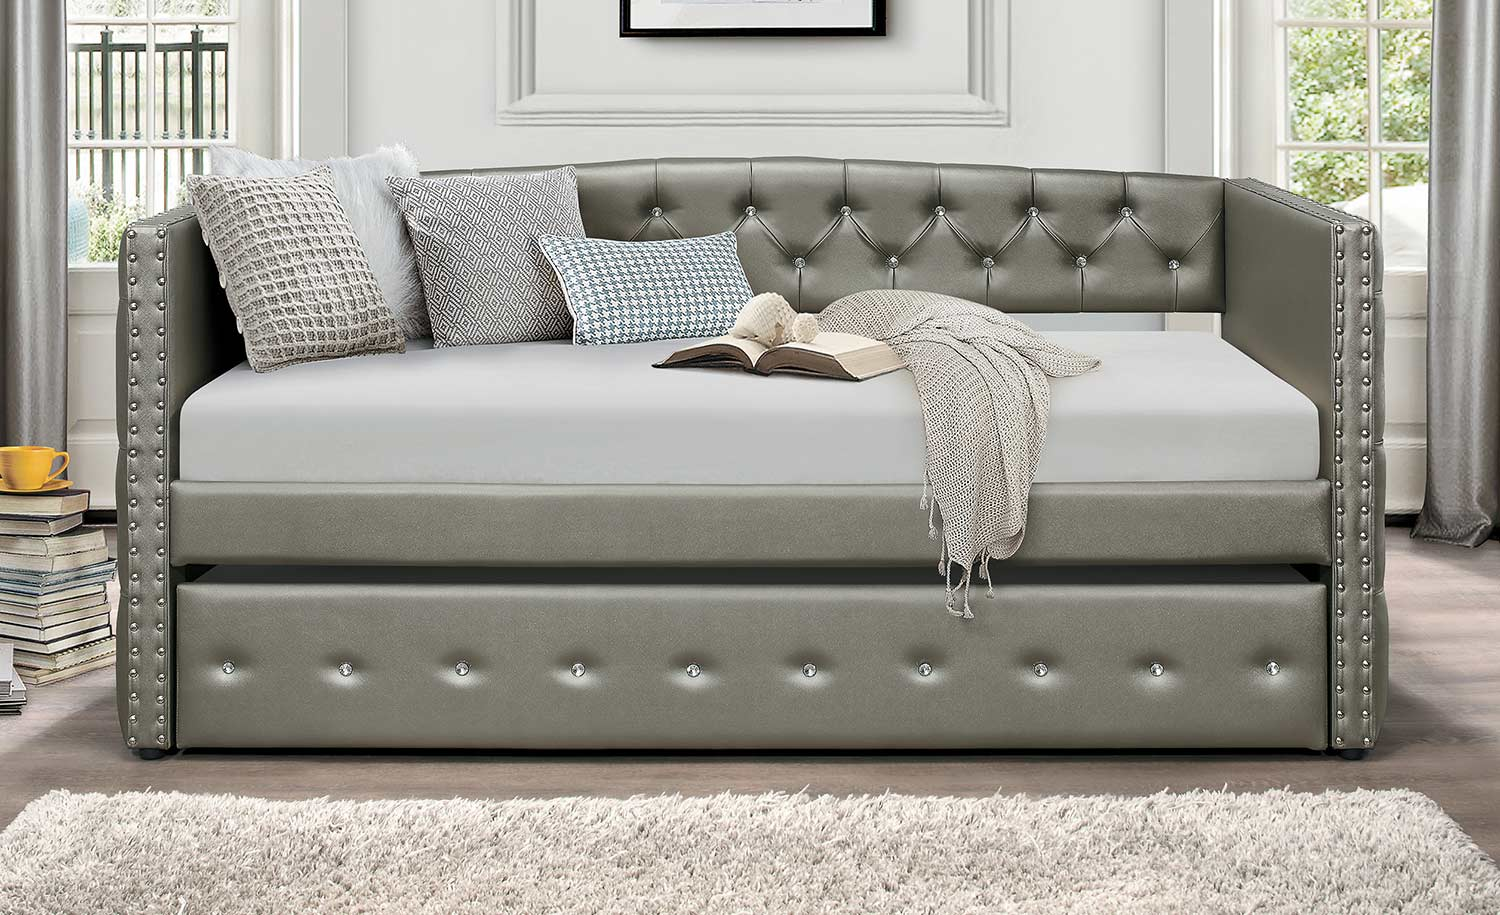 Homelegance Trill Daybed with Trundle - Silver Vinyl